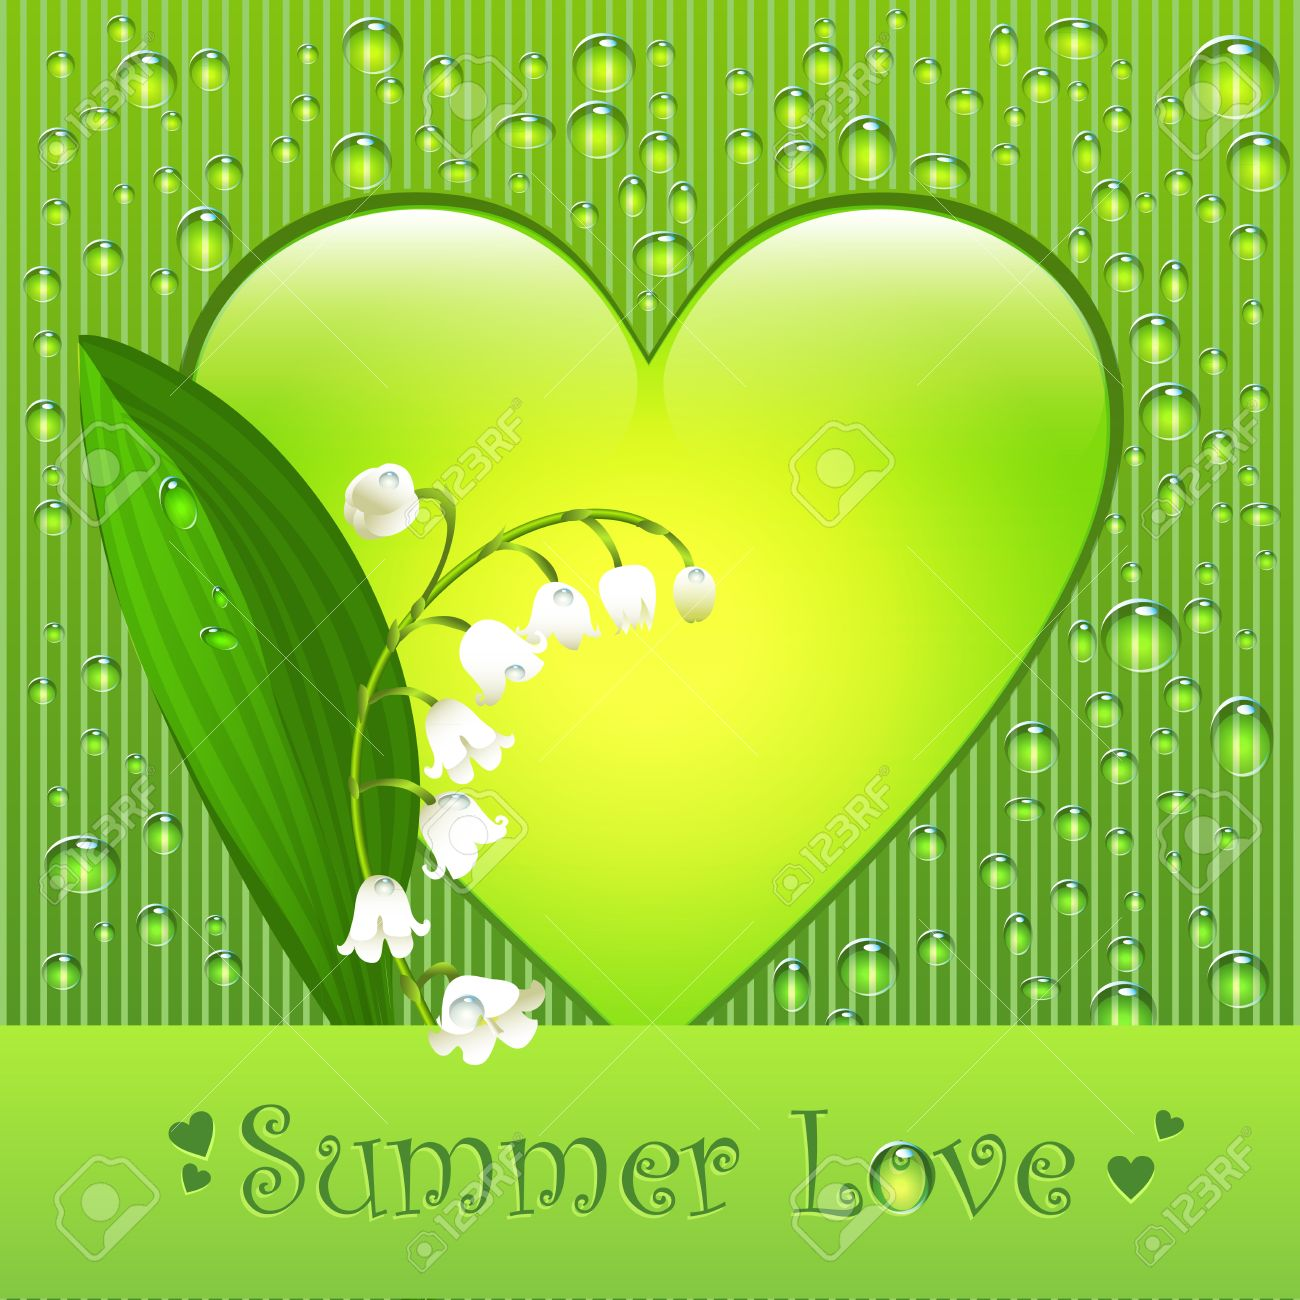 Summer Love Greeting Postcard With Lily Of The Valley Flower.